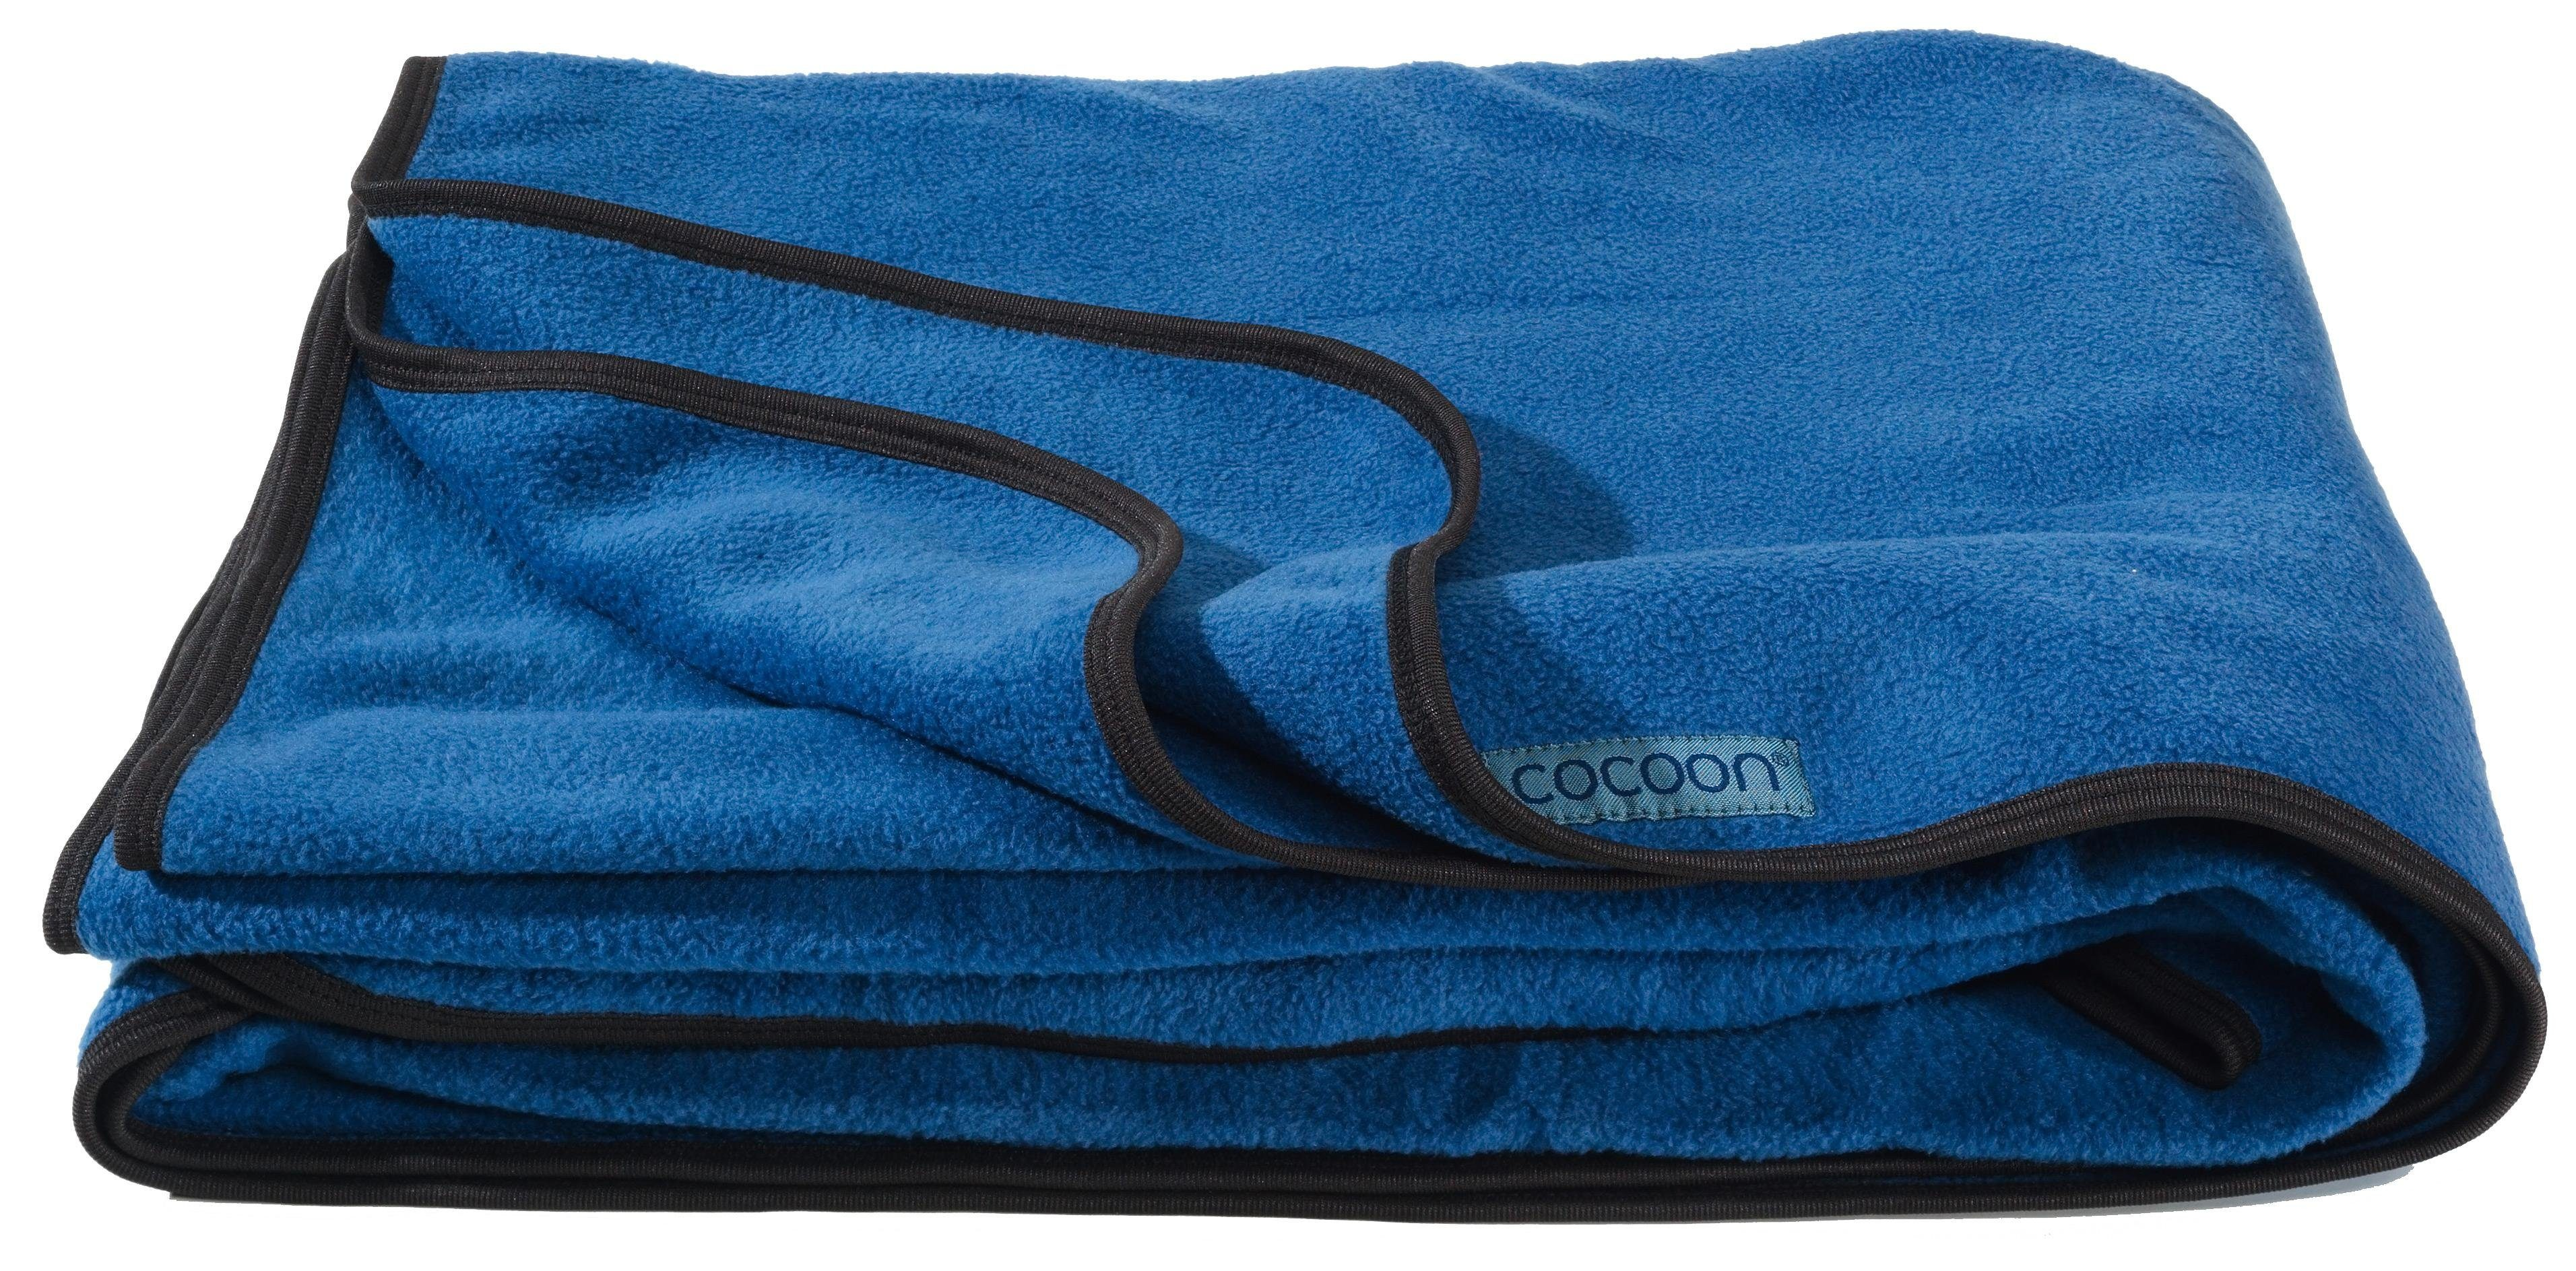 Cocoon Reisekissen »Fleece Blanket«